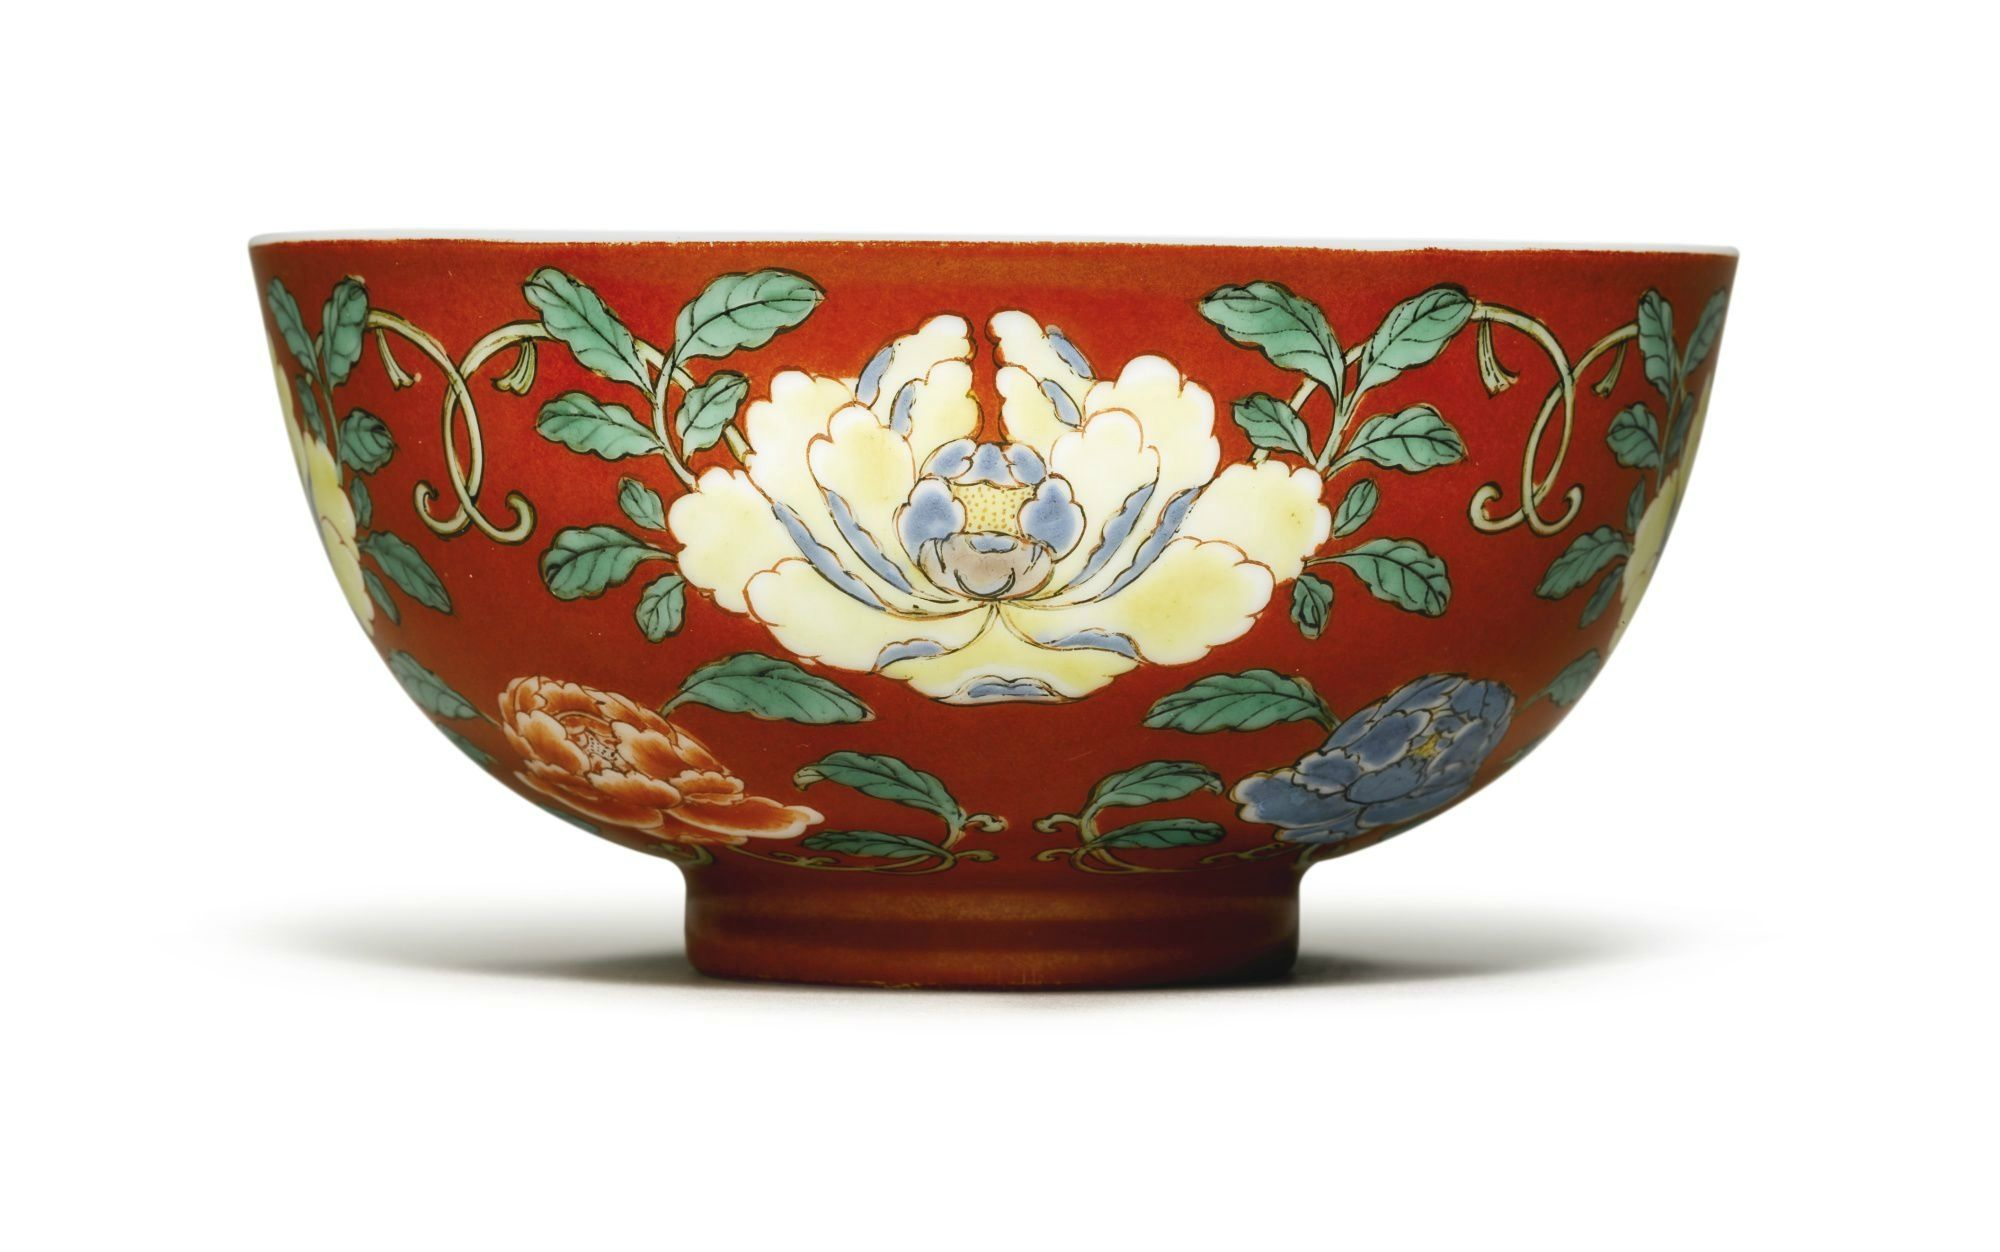 Sotheby S To Auction Fine Chinese Ceramics From The Alfred Beit Foundation In London Ceramique Chinoise Ceramique